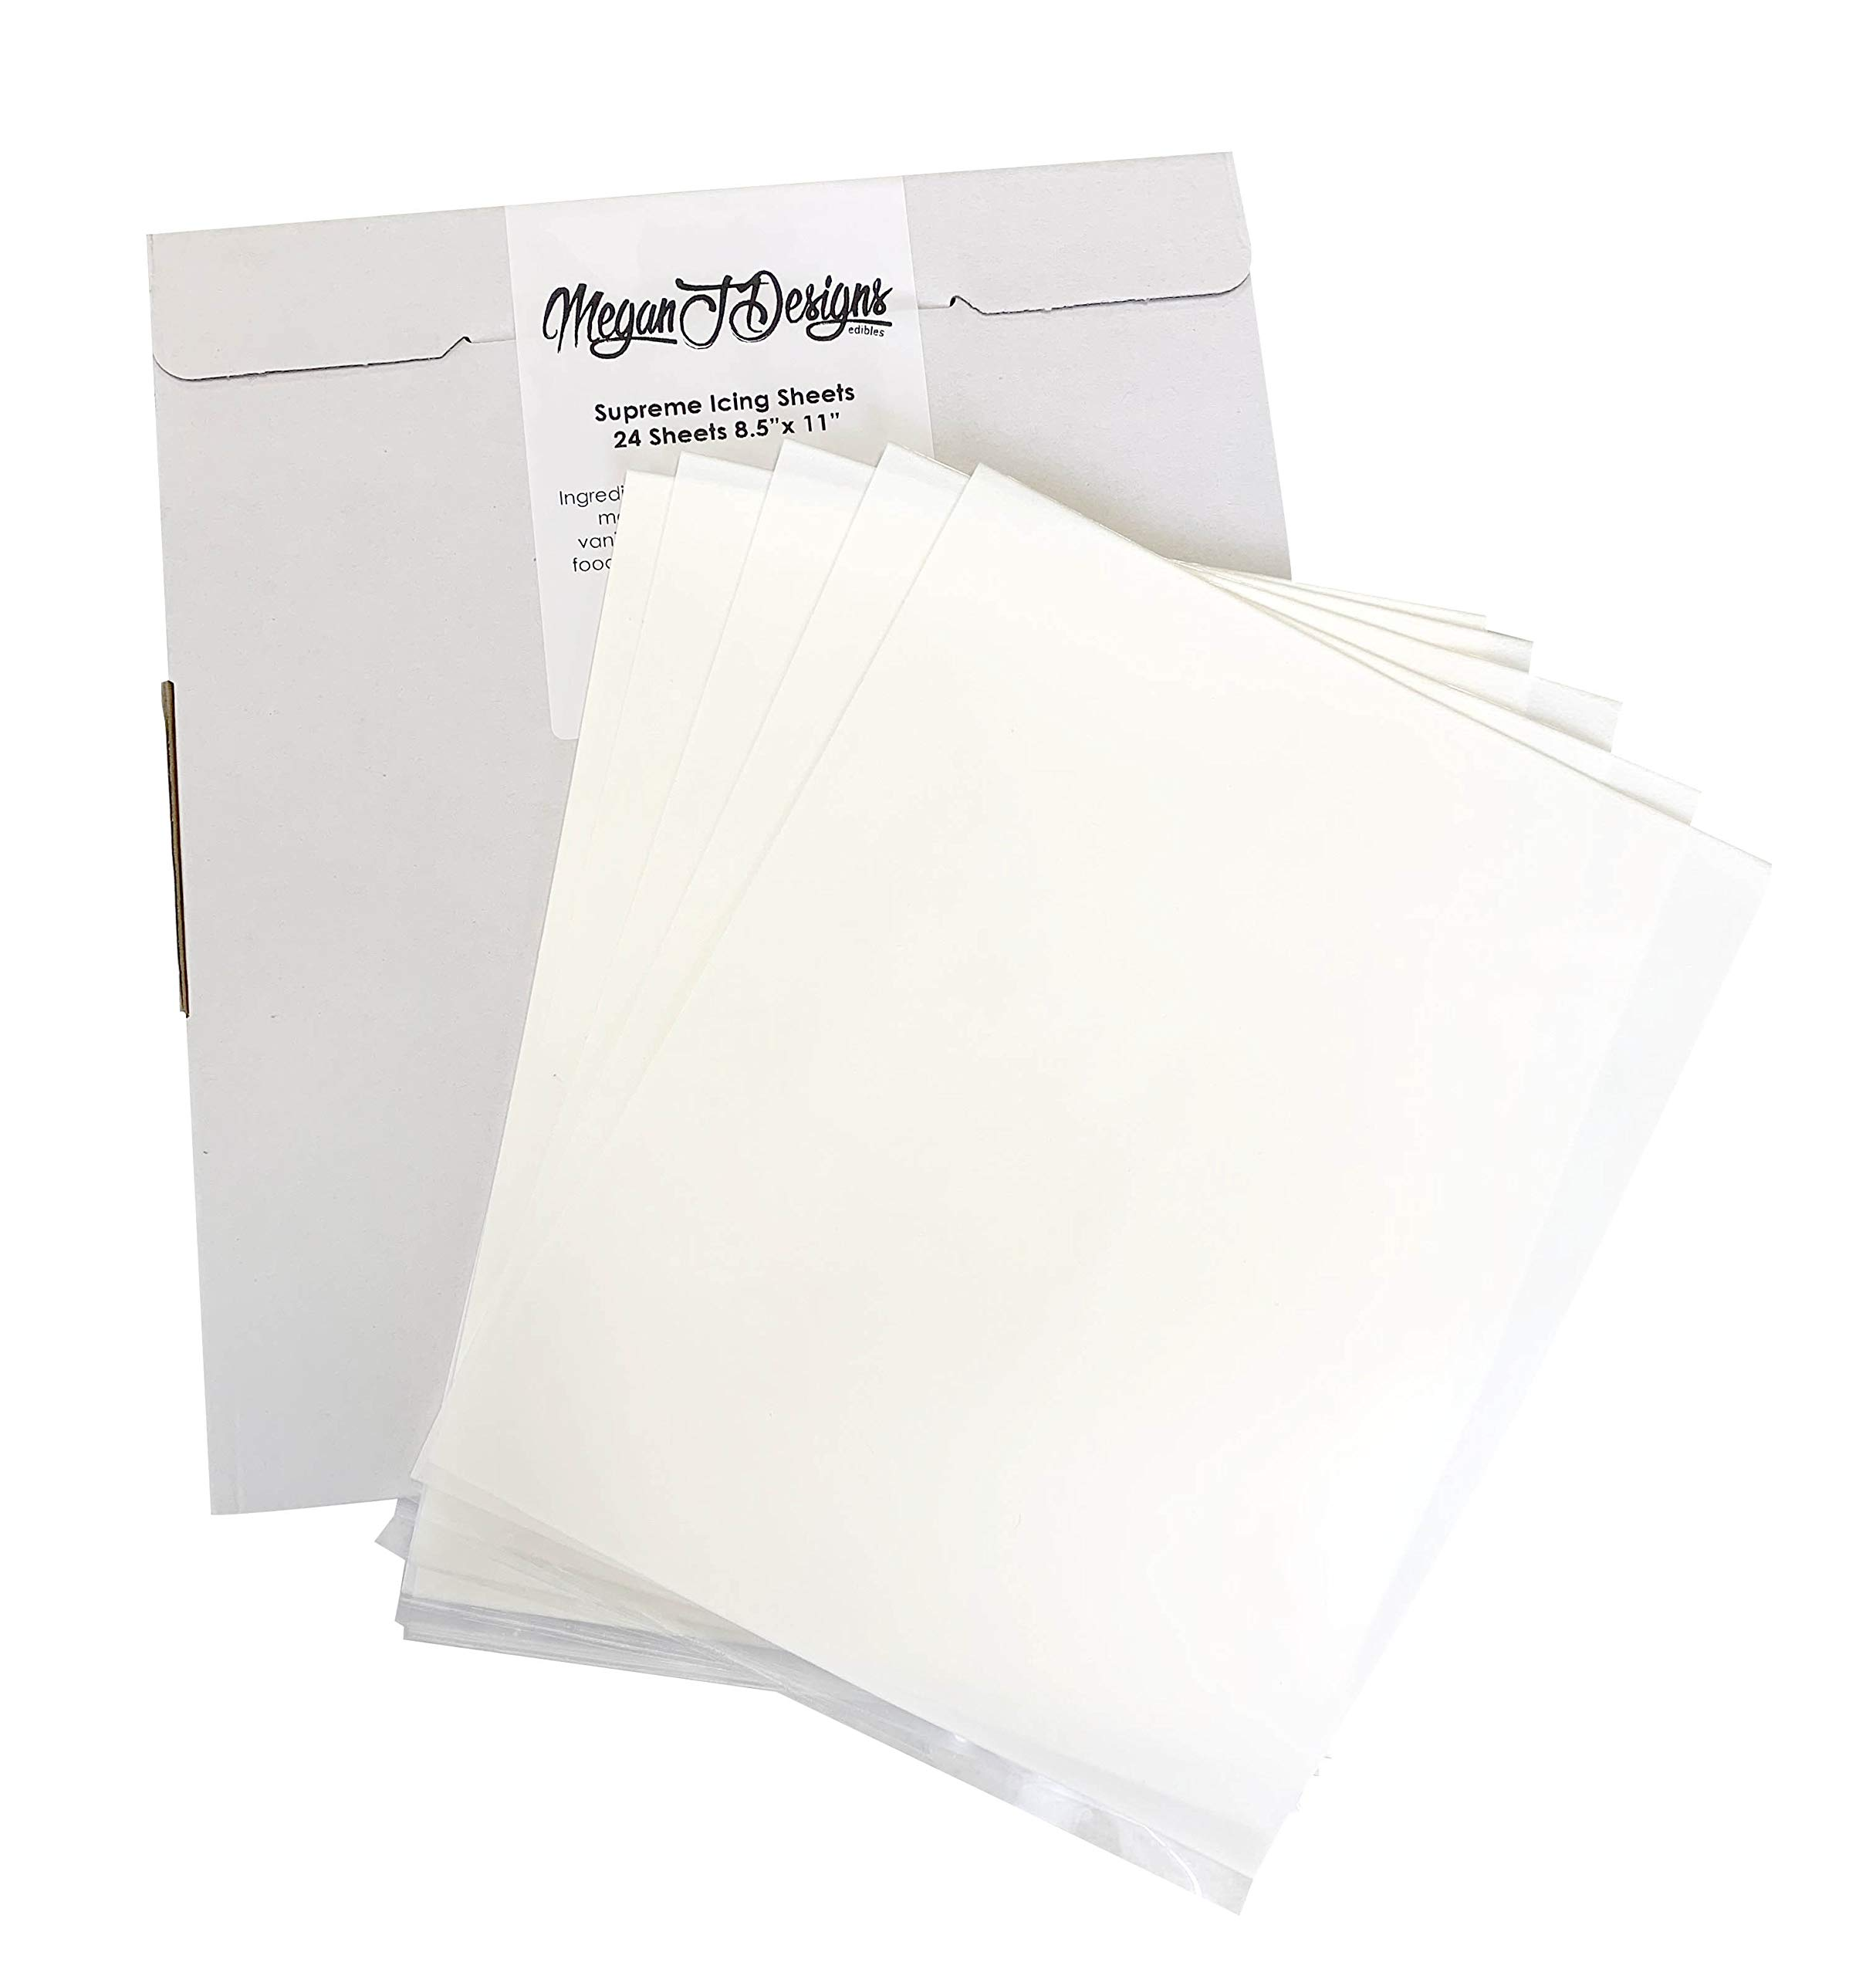 Supreme Icing Sheets 24 Pack Premium White 8.5'' x 11'' by MeganJDesigns